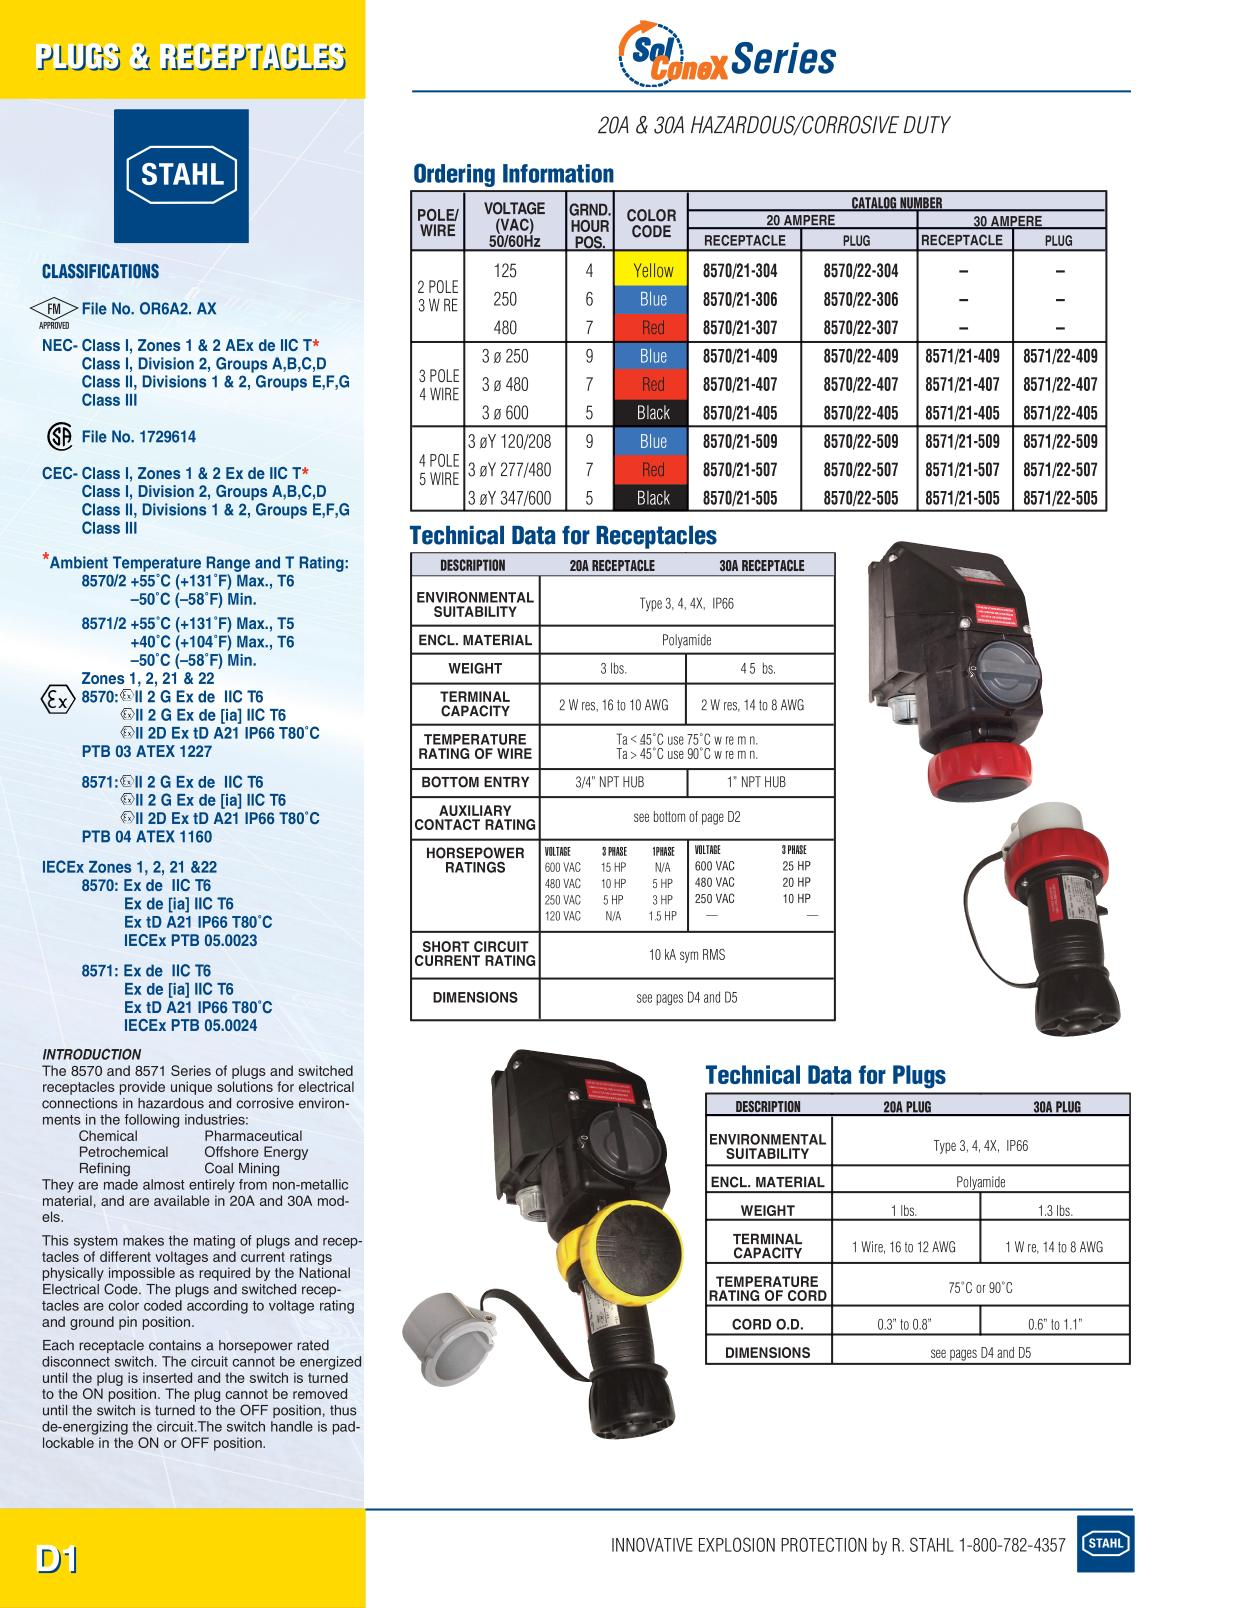 R Stahl Electrical Catalog 9016 - Page D1 Plugs & Receptacles